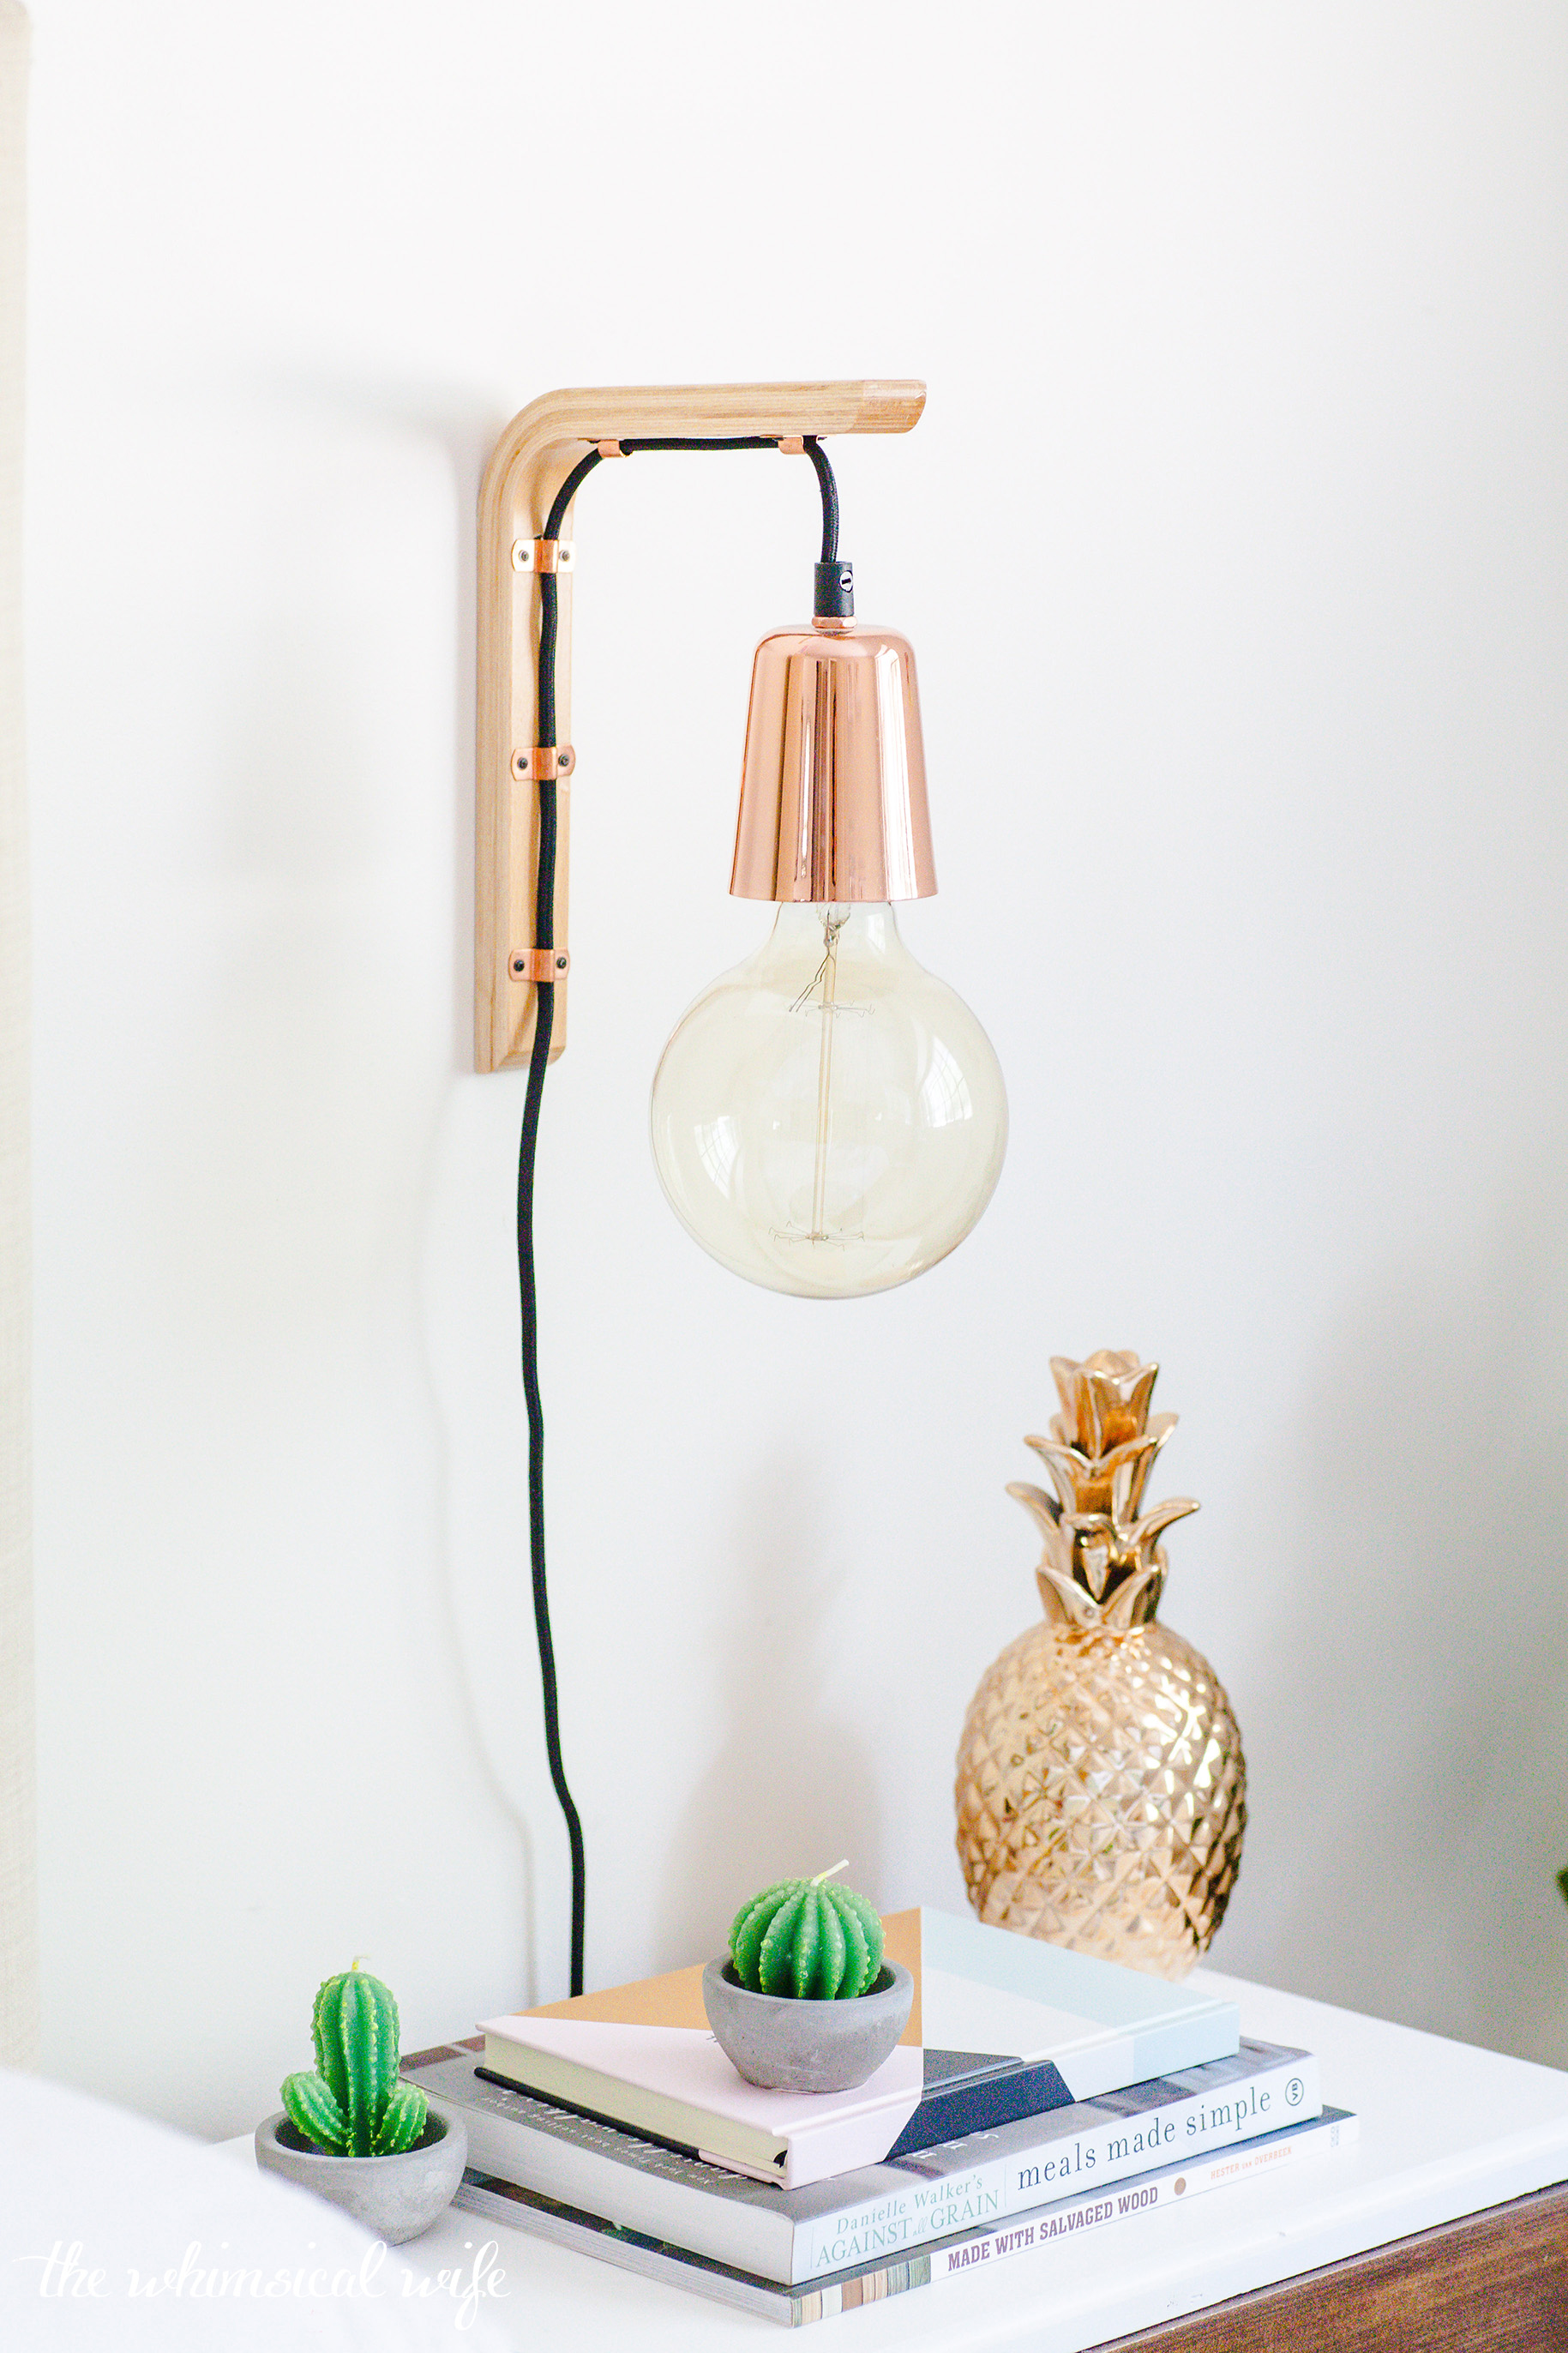 How To Make A Modern Hanging Wooden Wall Bracket Light   The Whimsical Wife